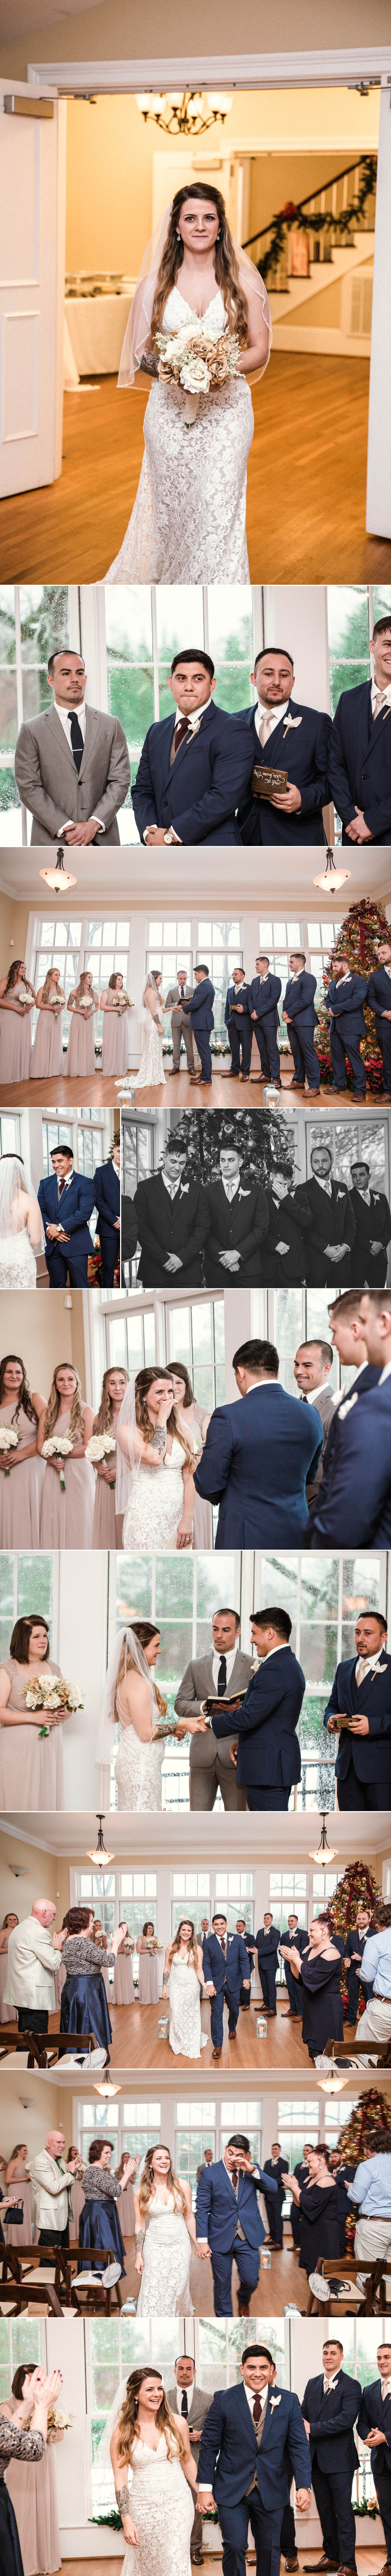 Indoor Ceremony - Jessica + Brandon - Snowy Winter Wedding at the Rand Bryan House in Garner, NC - Raleigh North Carolina Wedding Photographer